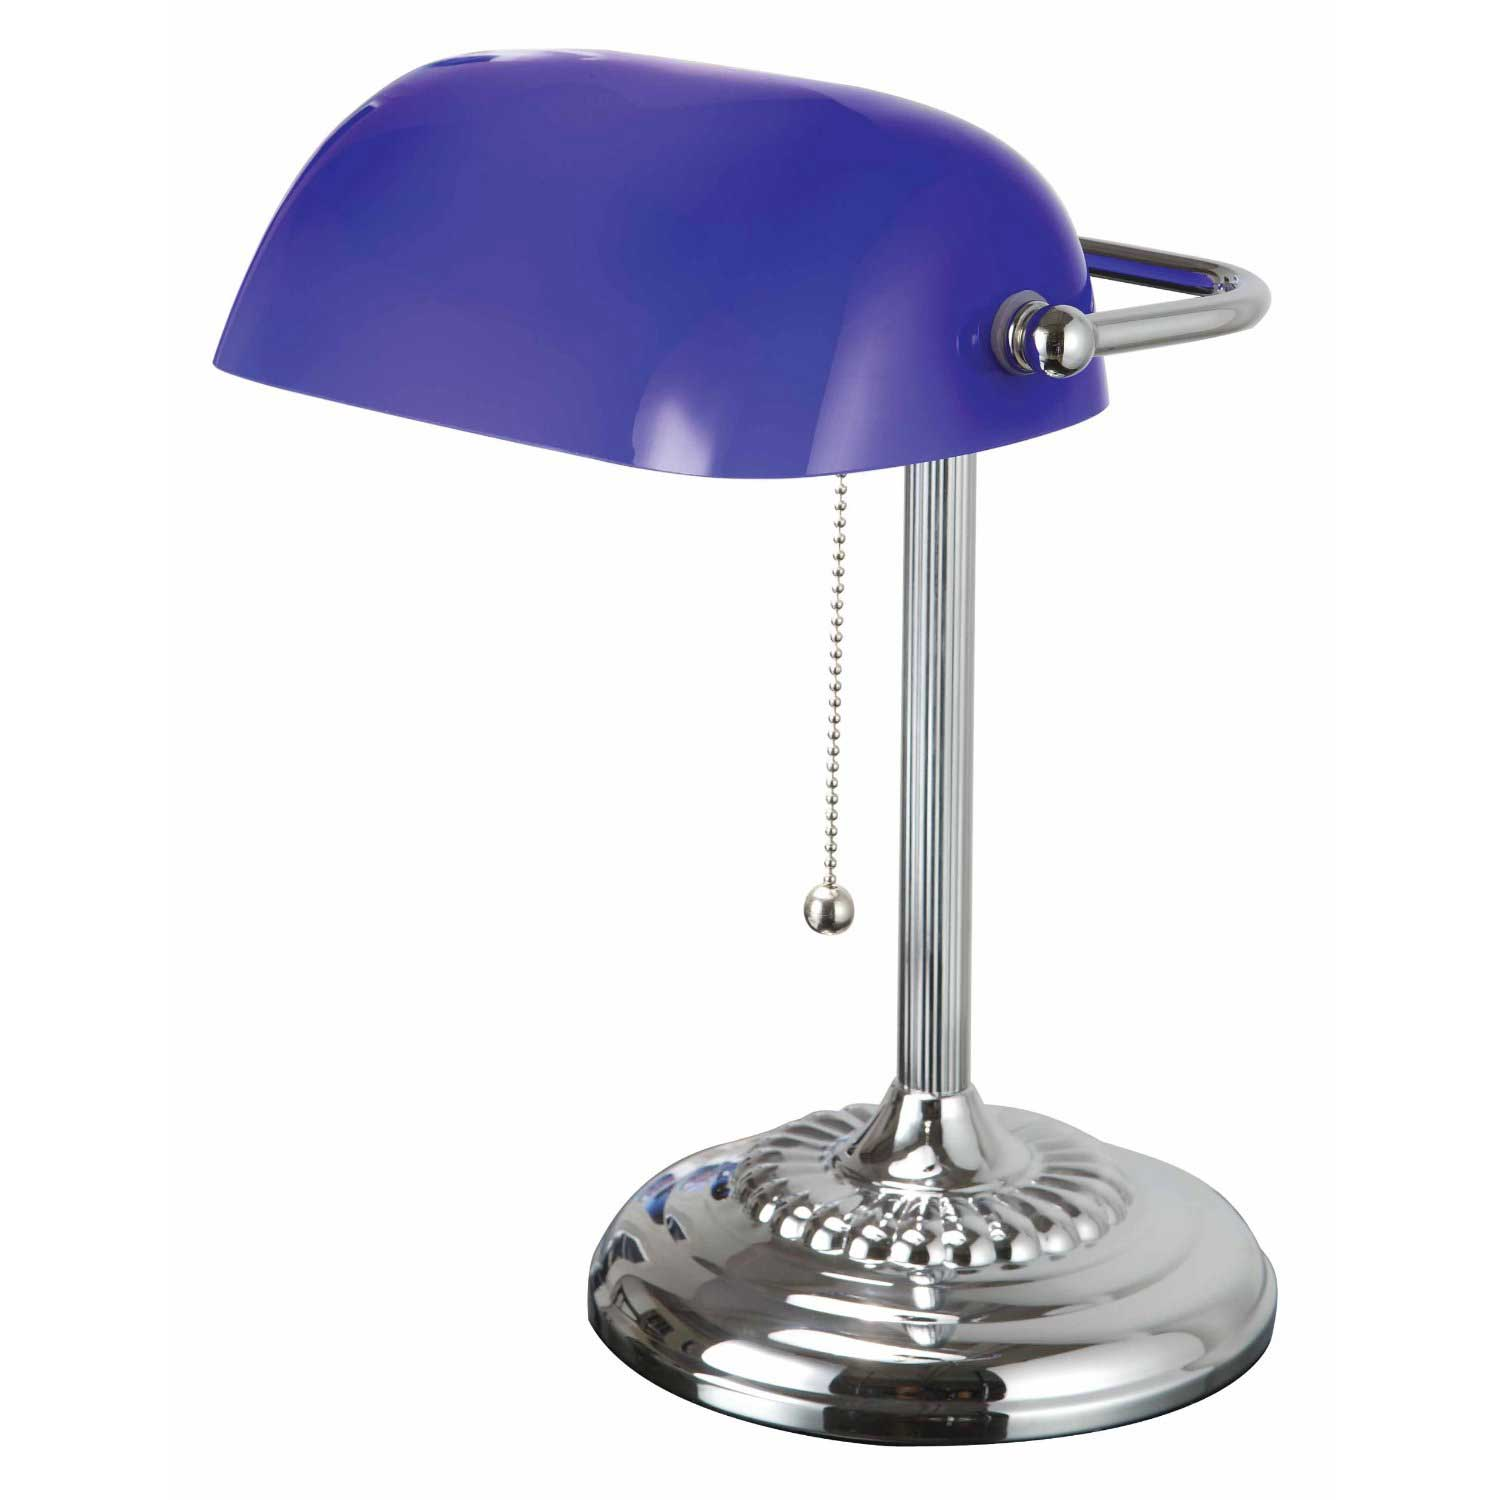 Daylight Spectrum Blue Glass Shade Bankers Desk Lamp